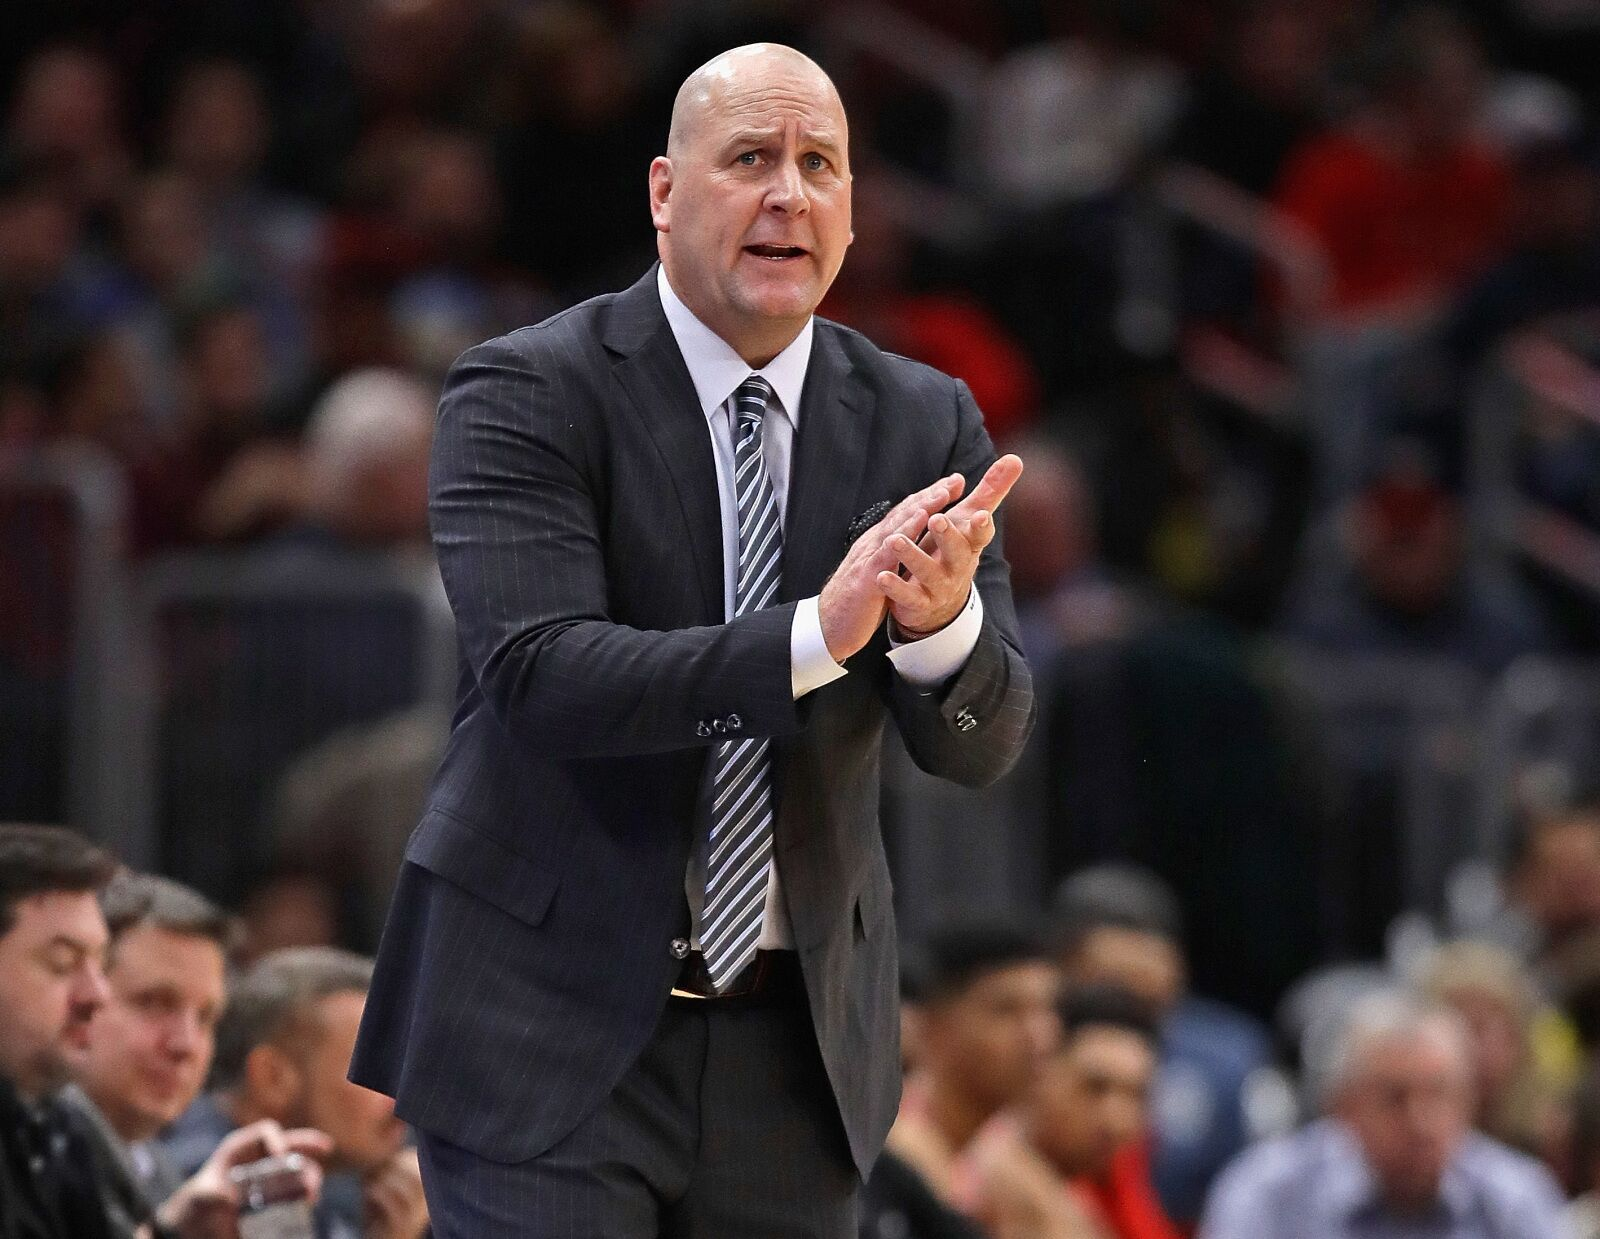 CHICAGO, ILLINOIS - DECEMBER 08: Head coach Jim Boylen of the Chicago Bulls encourages his team against the Boston Celtics at United Center on December 08, 2018 in Chicago, Illinois. NOTE TO USER: User expressly acknowledges and agrees that, by downloading and or using this photograph, User is consenting to the terms and conditions of the Getty Images License Agreement. (Photo by Jonathan Daniel/Getty Images)